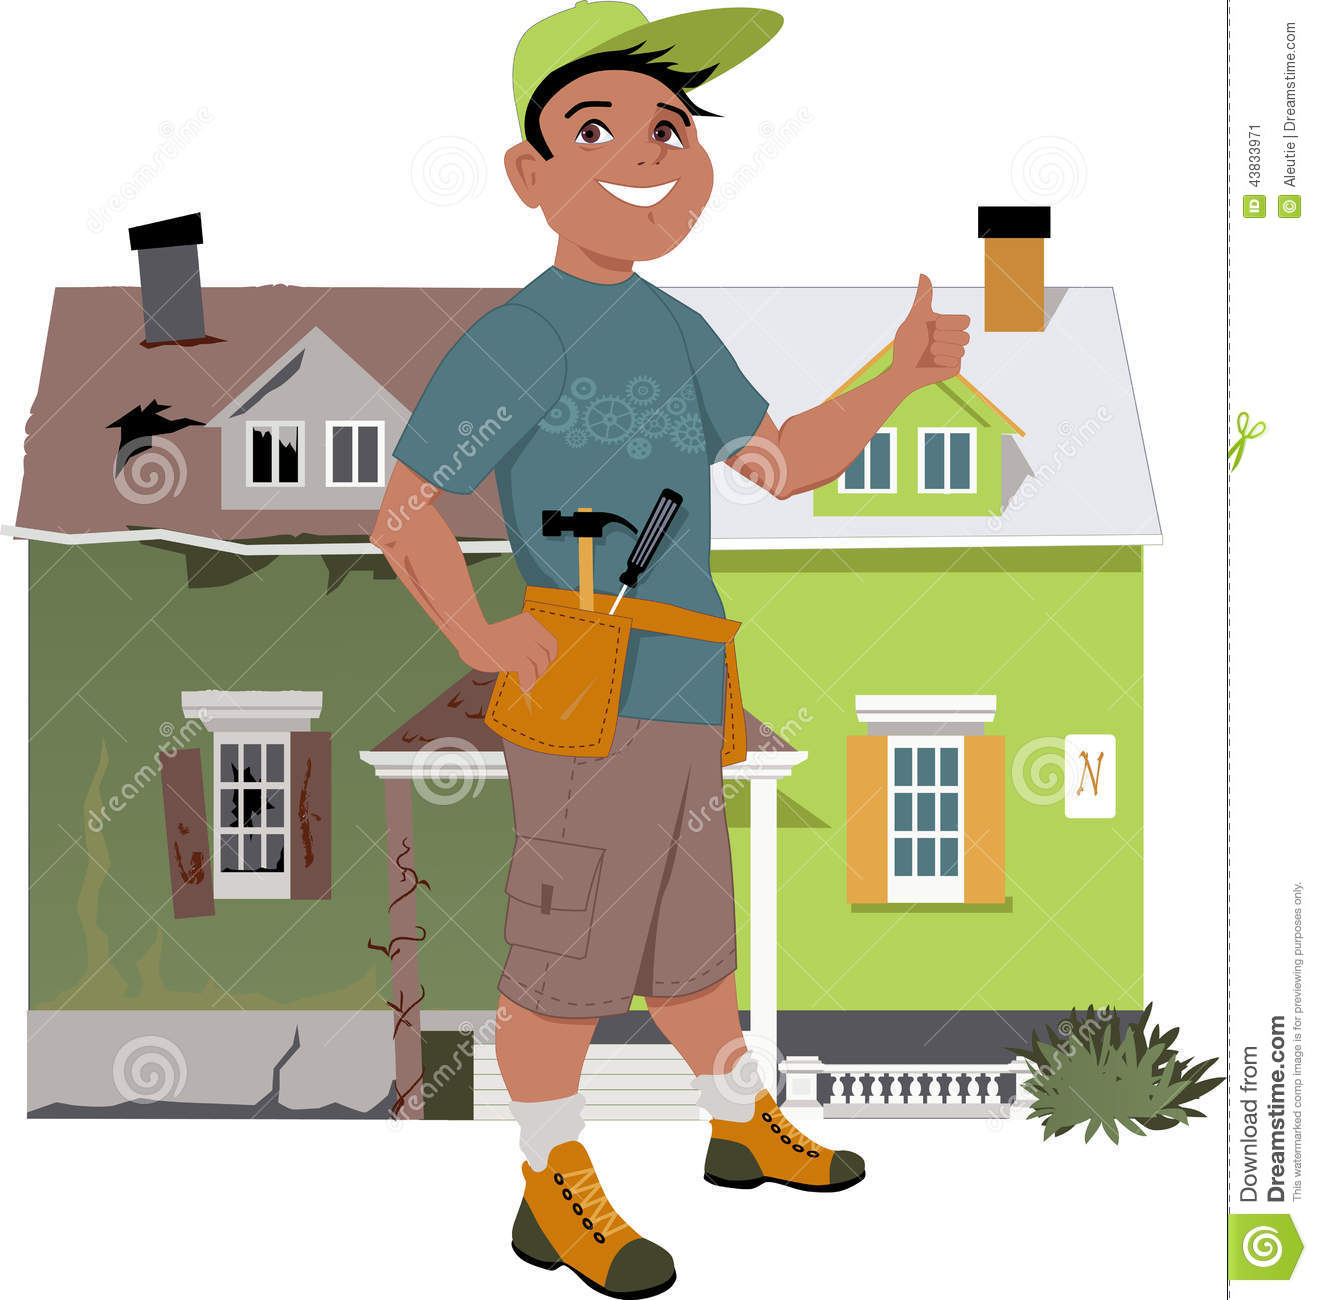 Renovate A House Stock Vector. Image Of Person, Home